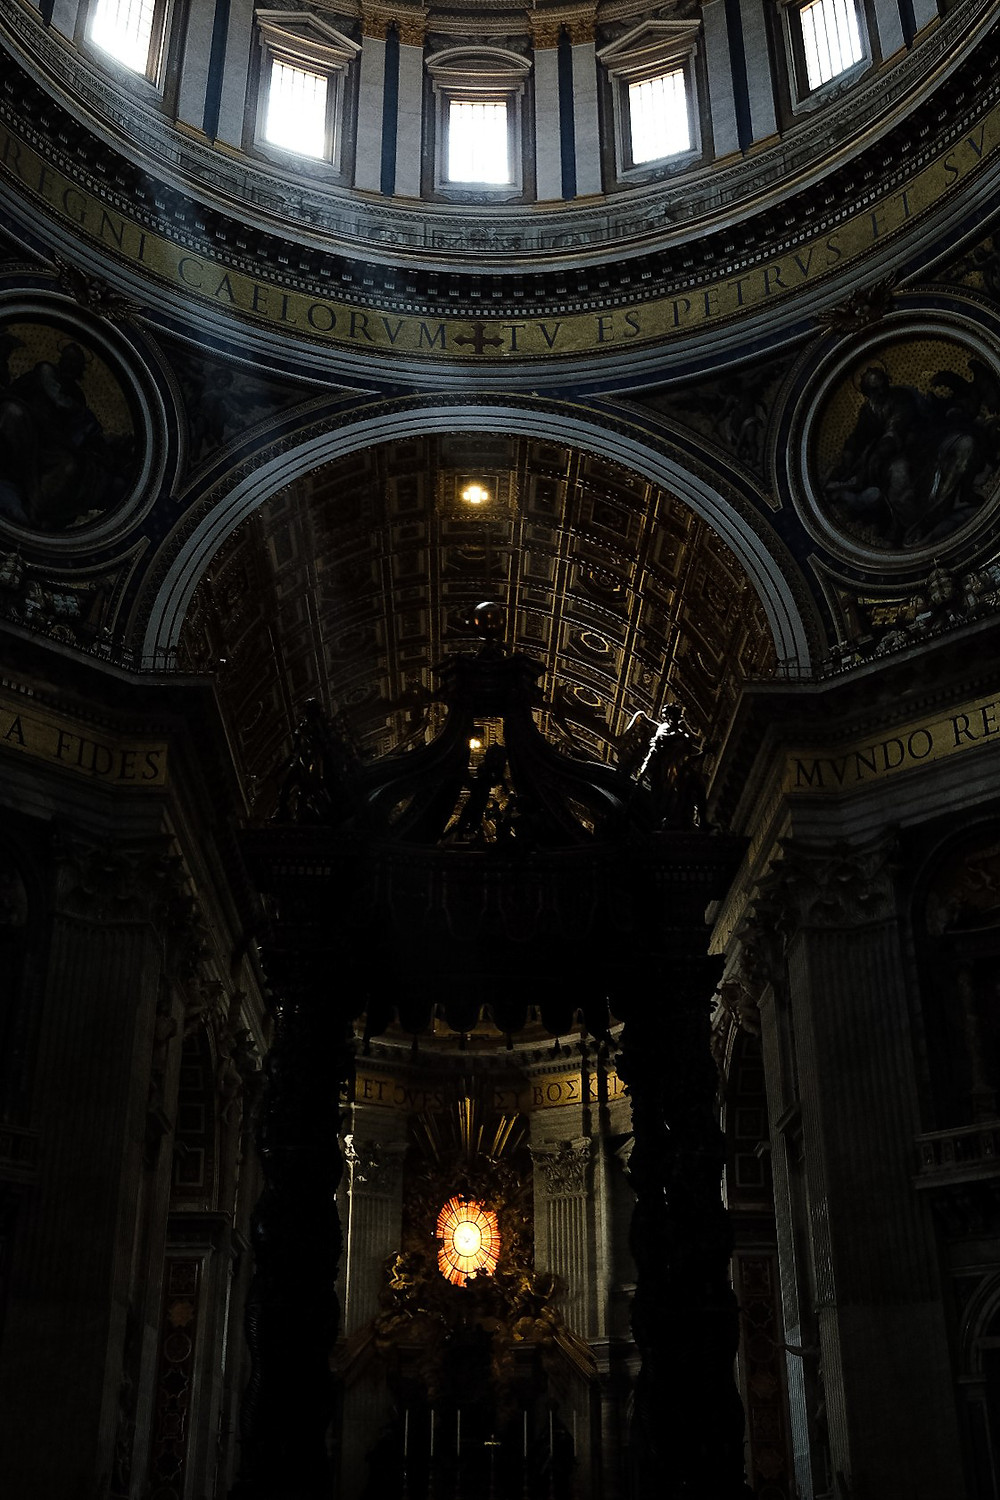 sunbeams in the dome of Saint Peter's Basilica